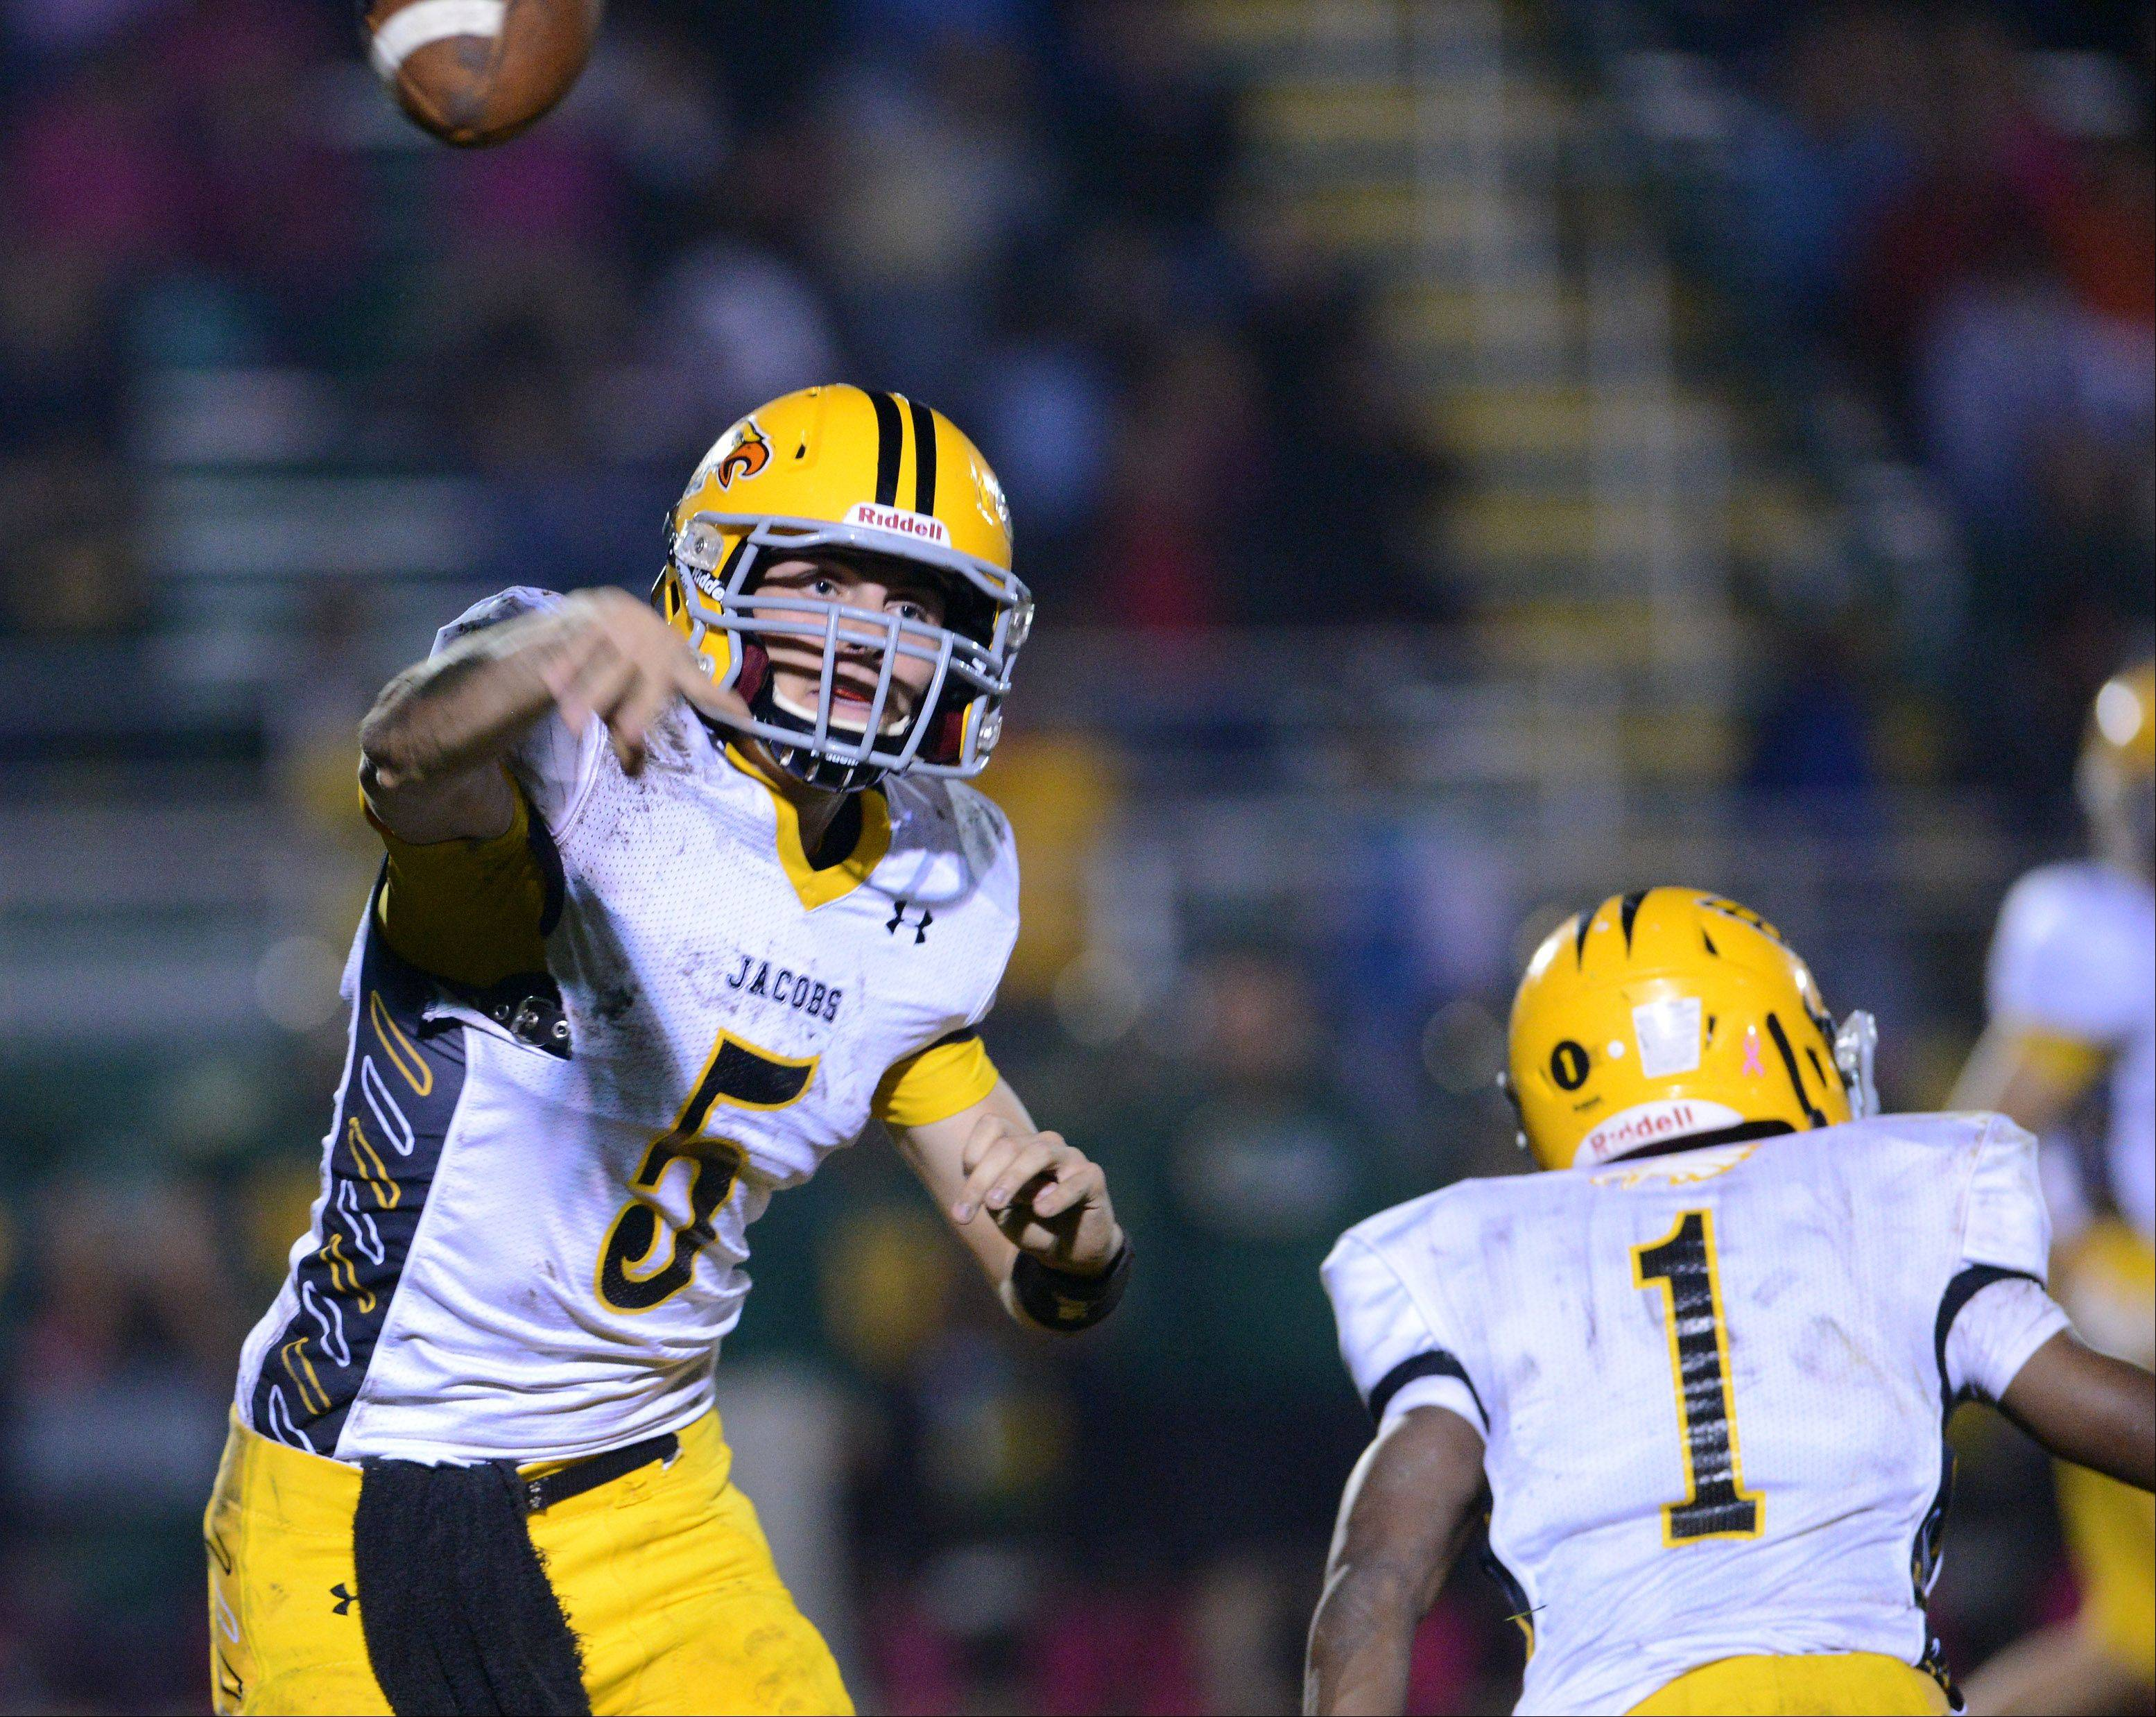 Quarterback Bret Mooney of Jacobs throws a pass .